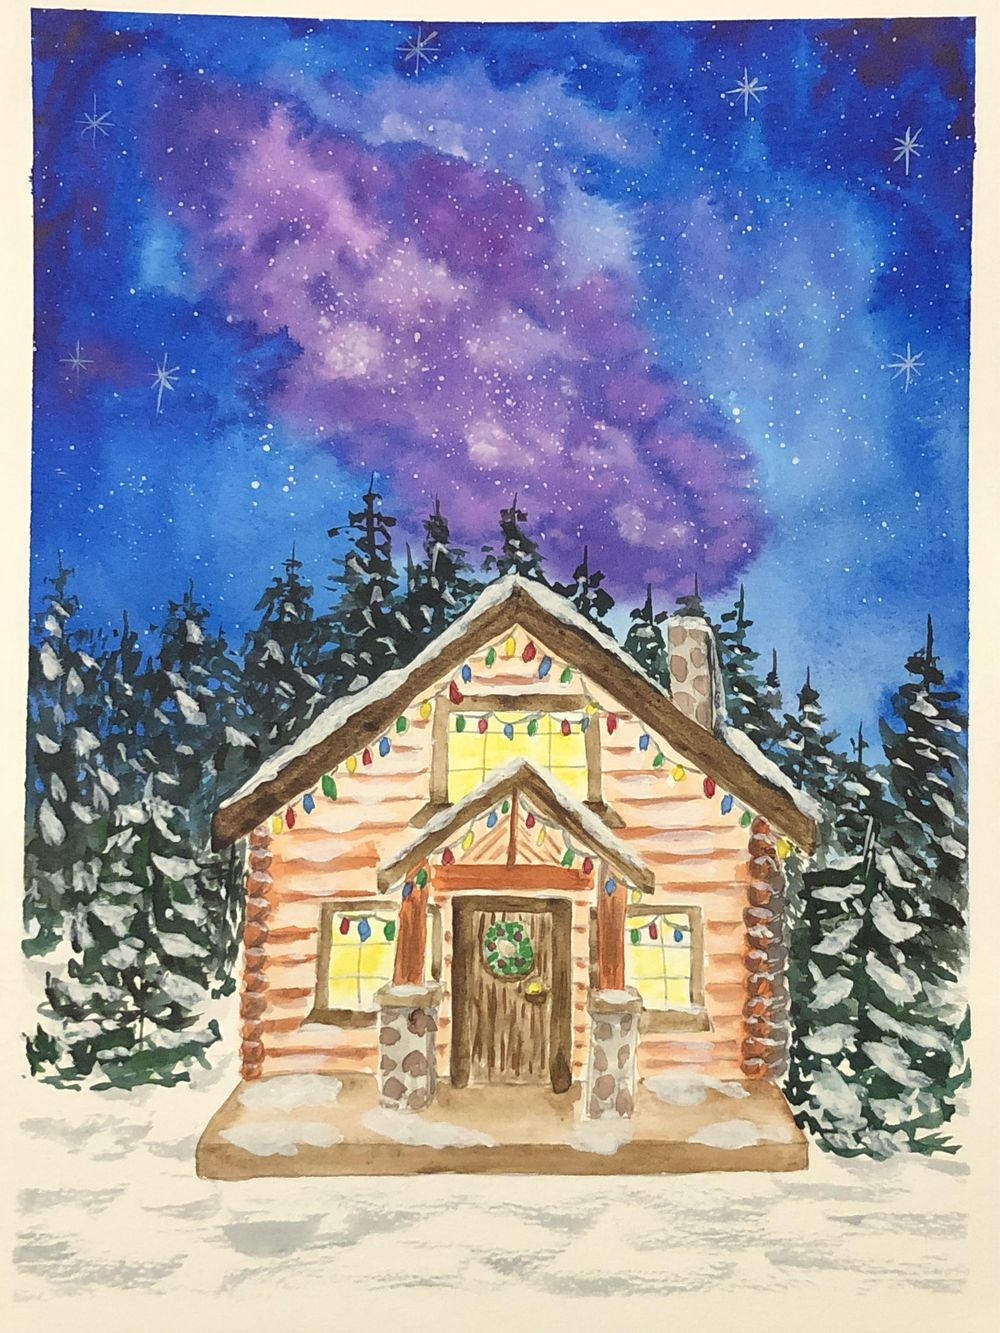 Christmas Cabin - image 1 - student project